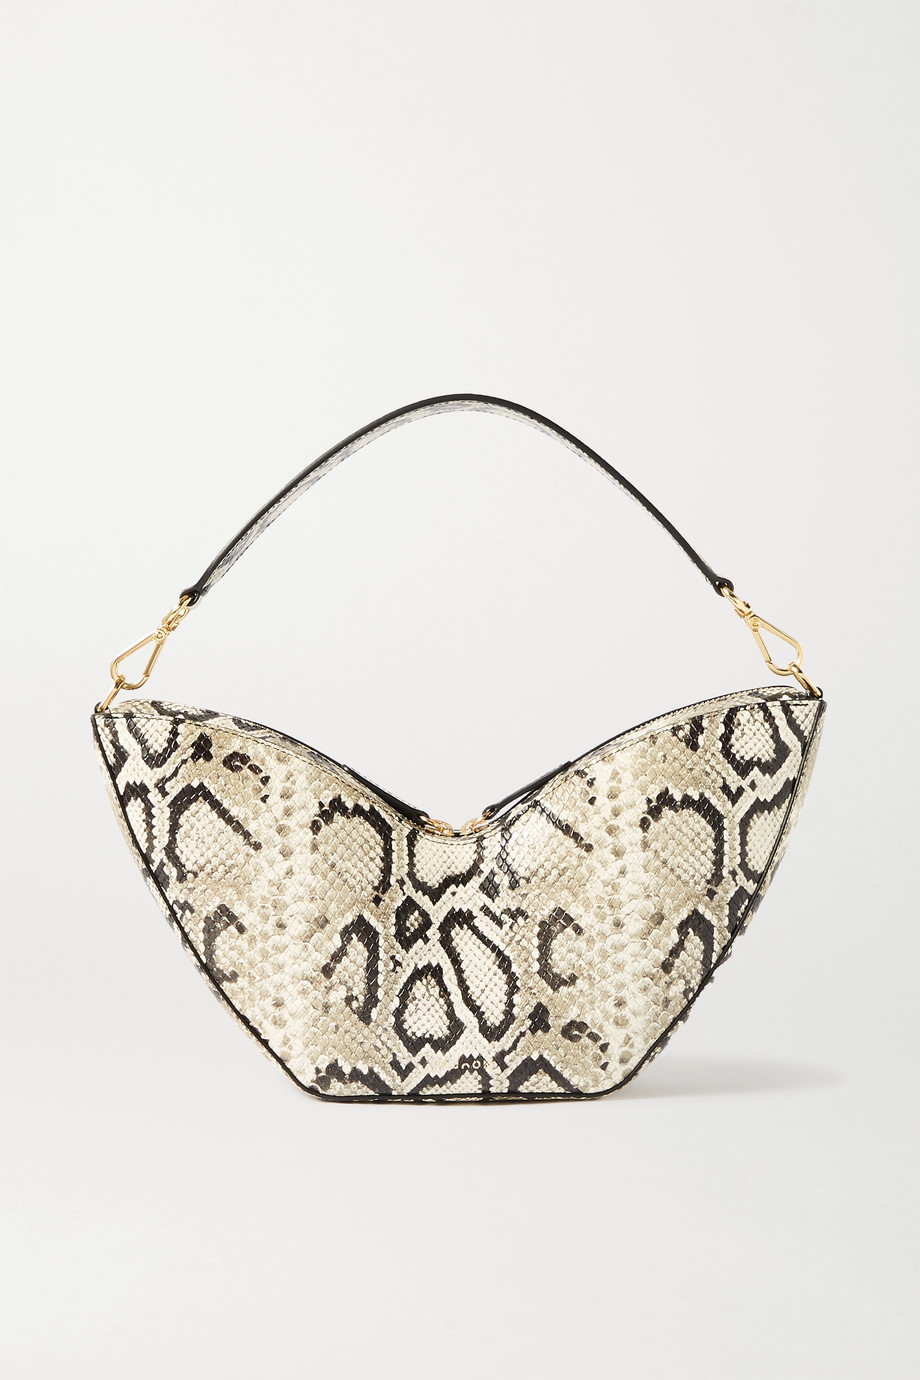 S.Joon Tulip python-effect leather shoulder bag